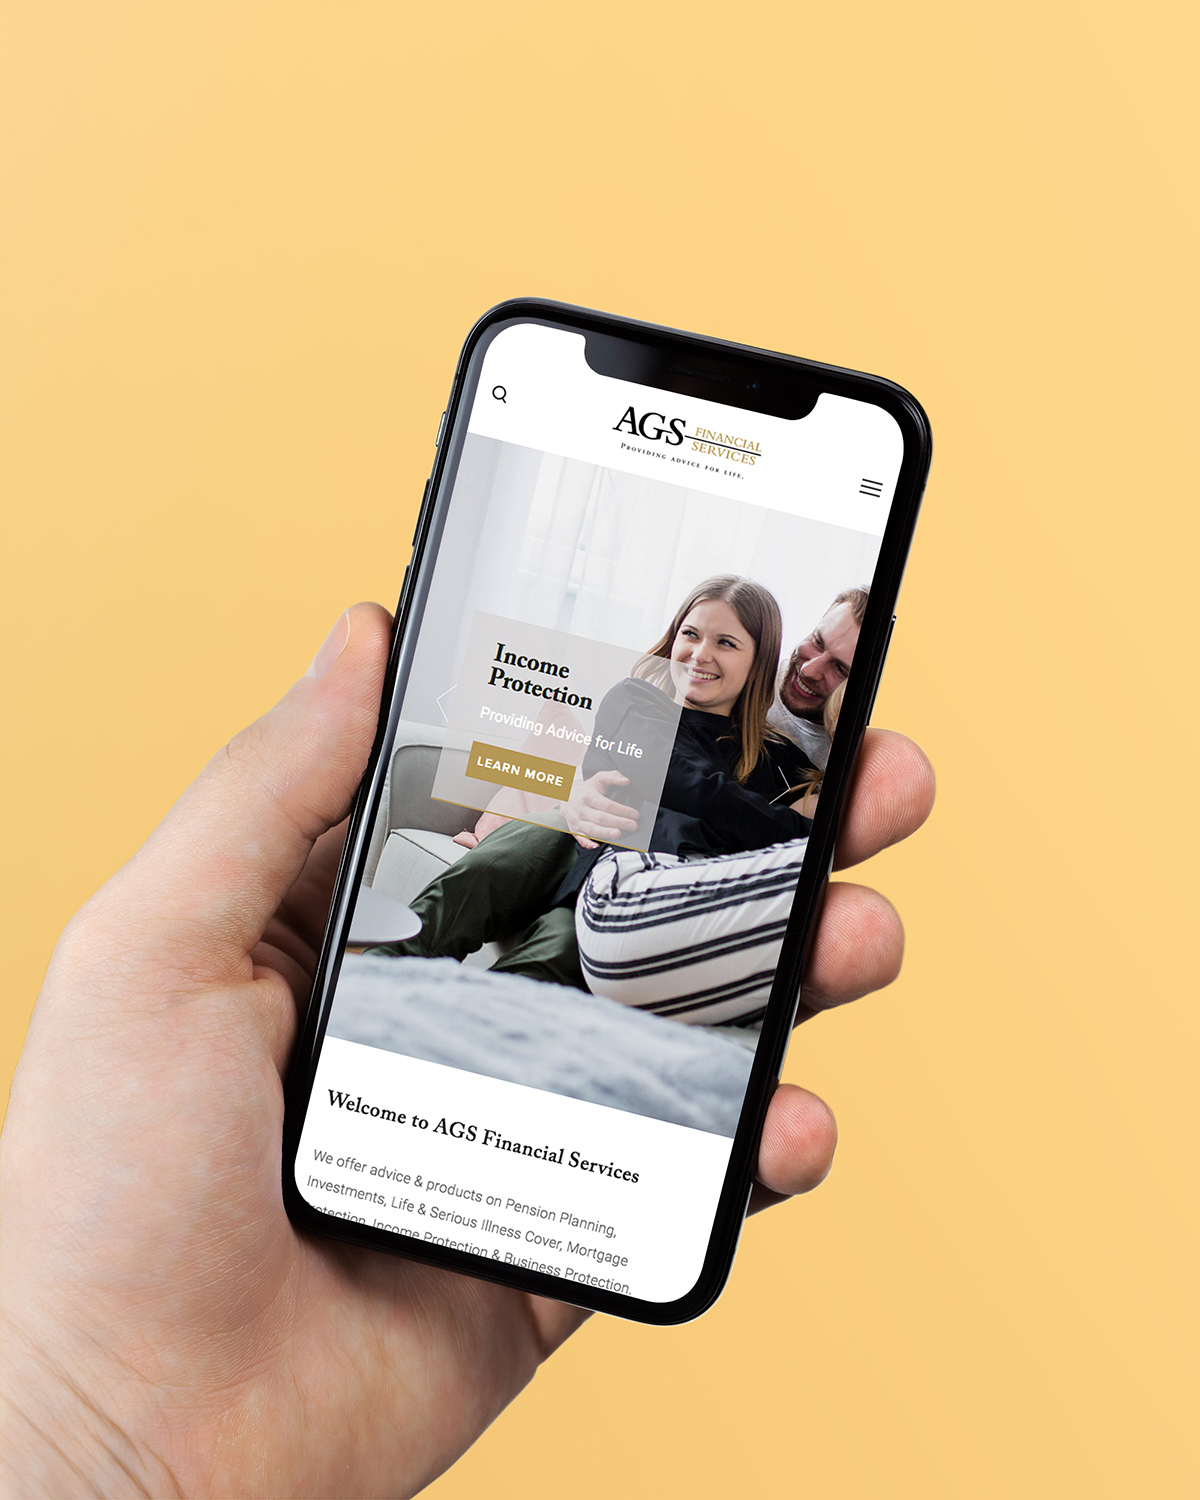 Iphone X in Hand Mockup_AGS_1200x1500.jpg